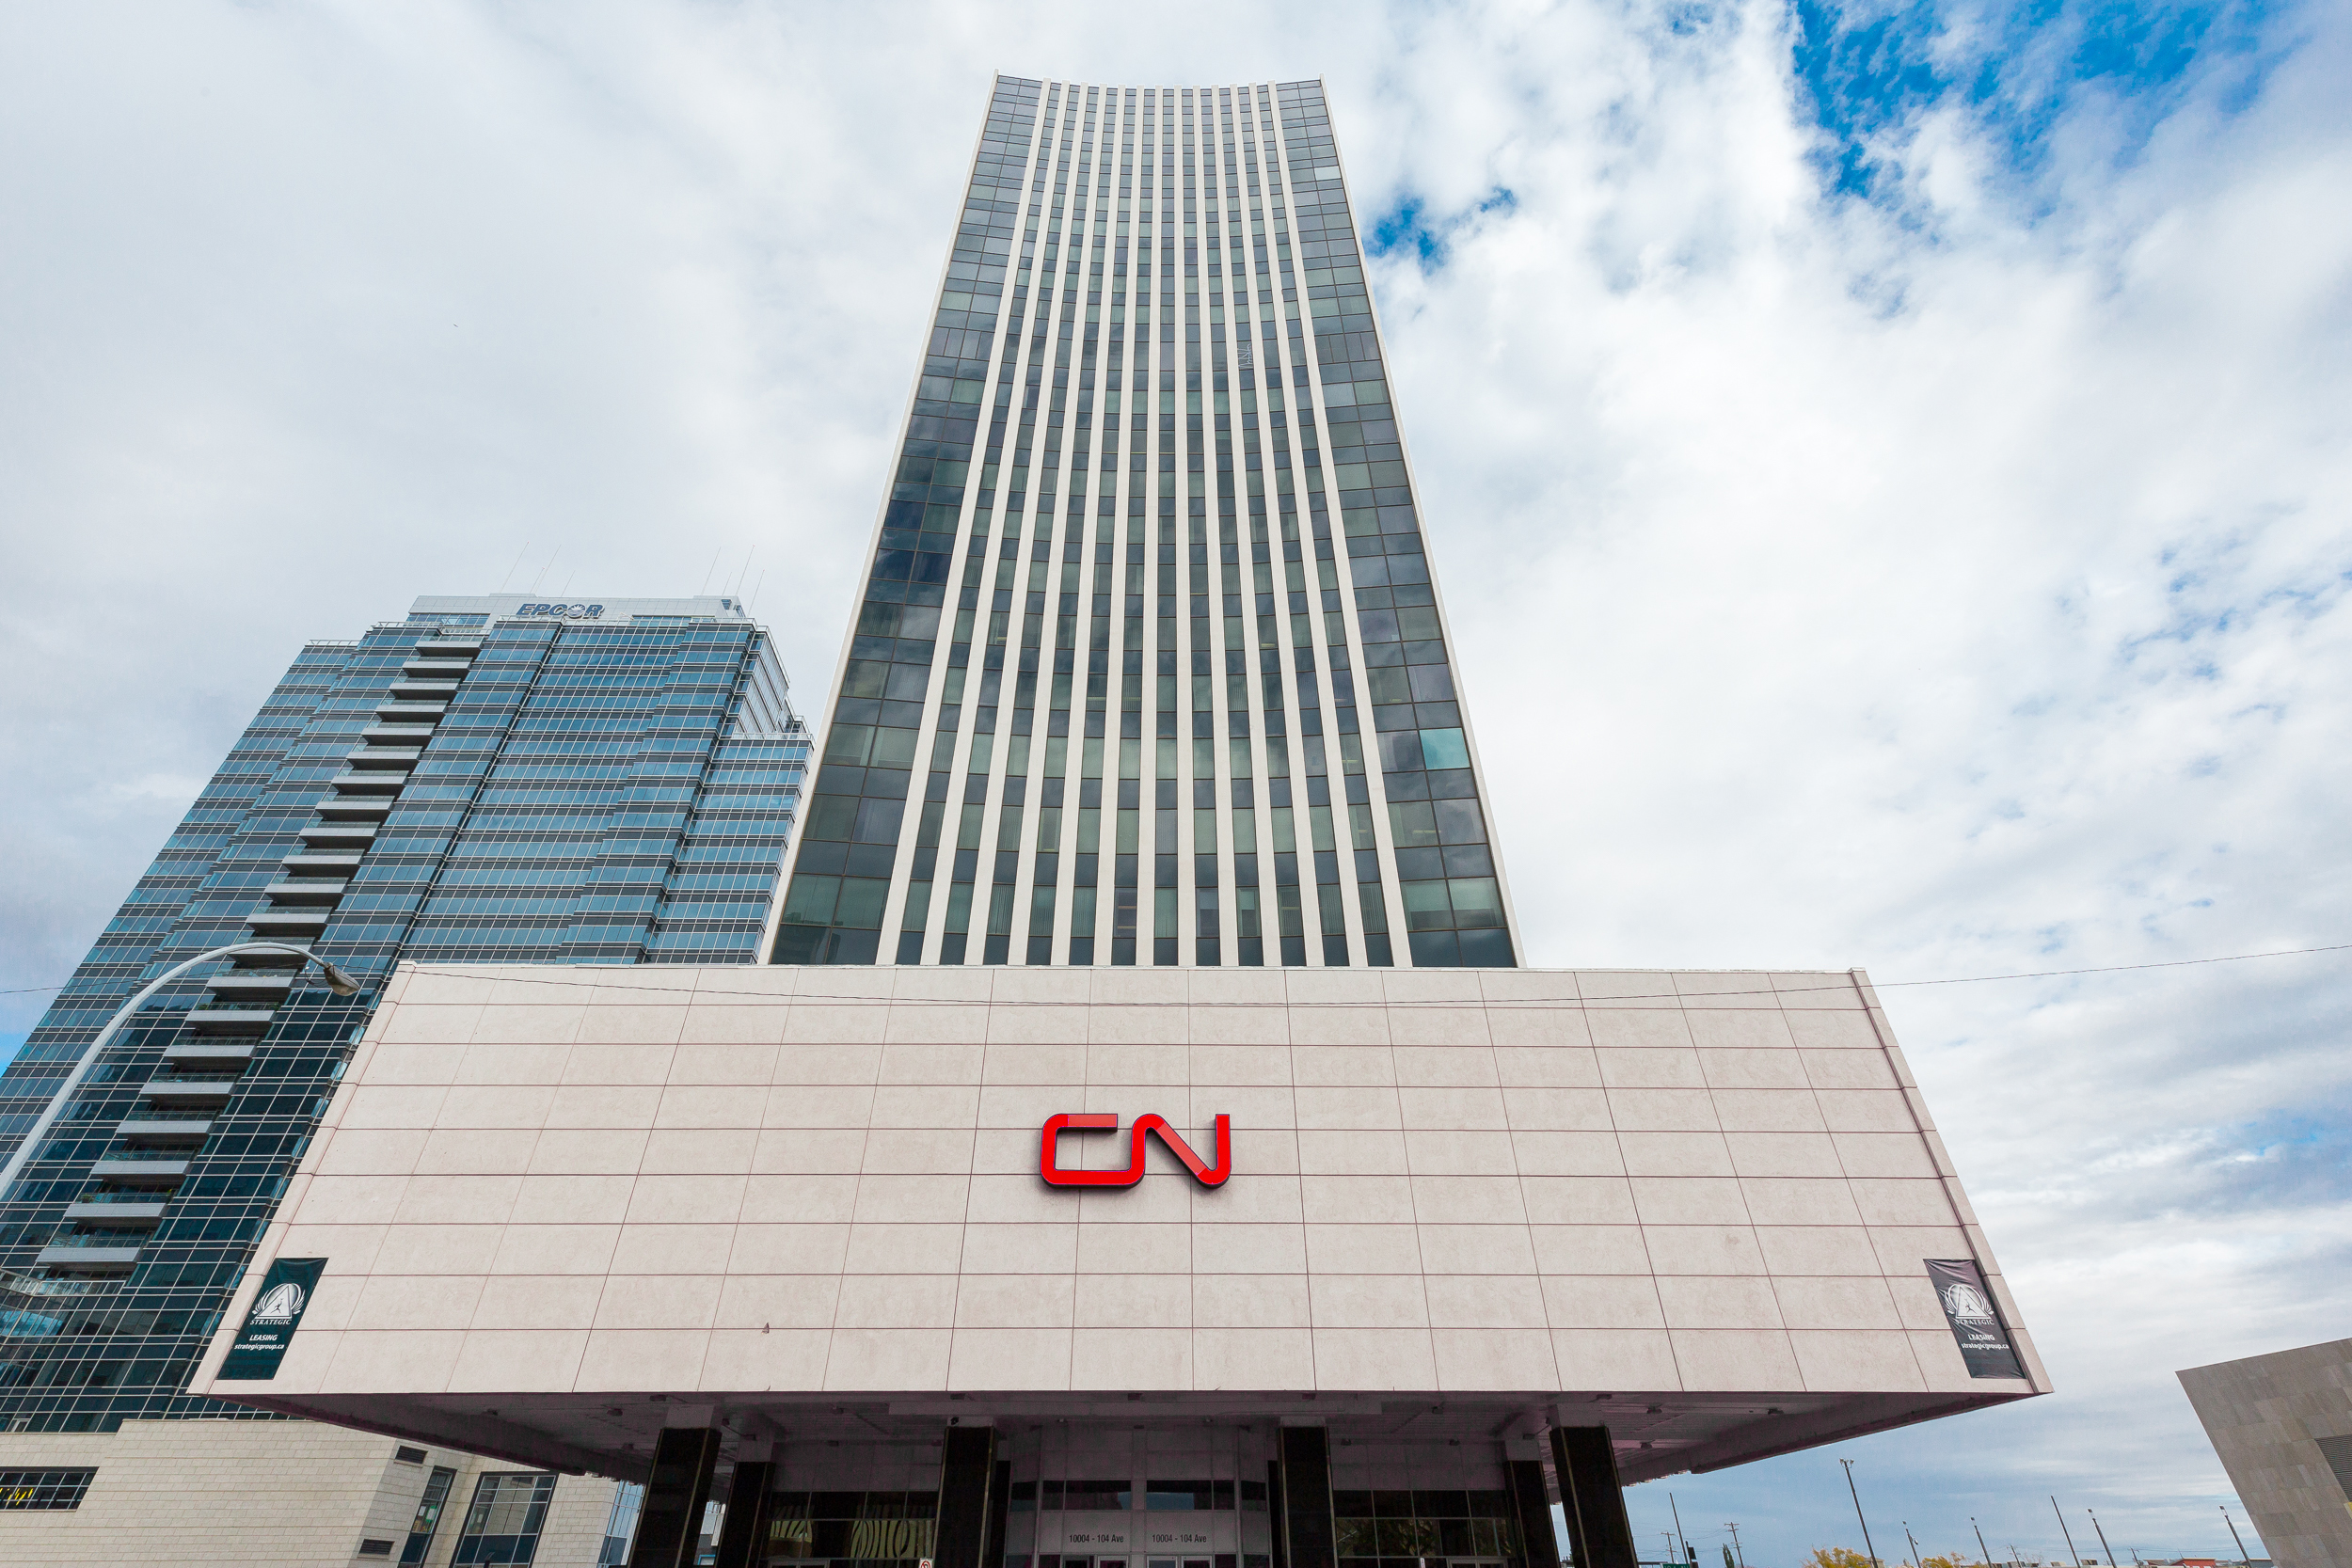 860 CN Tower 10004 104 Avenue NW